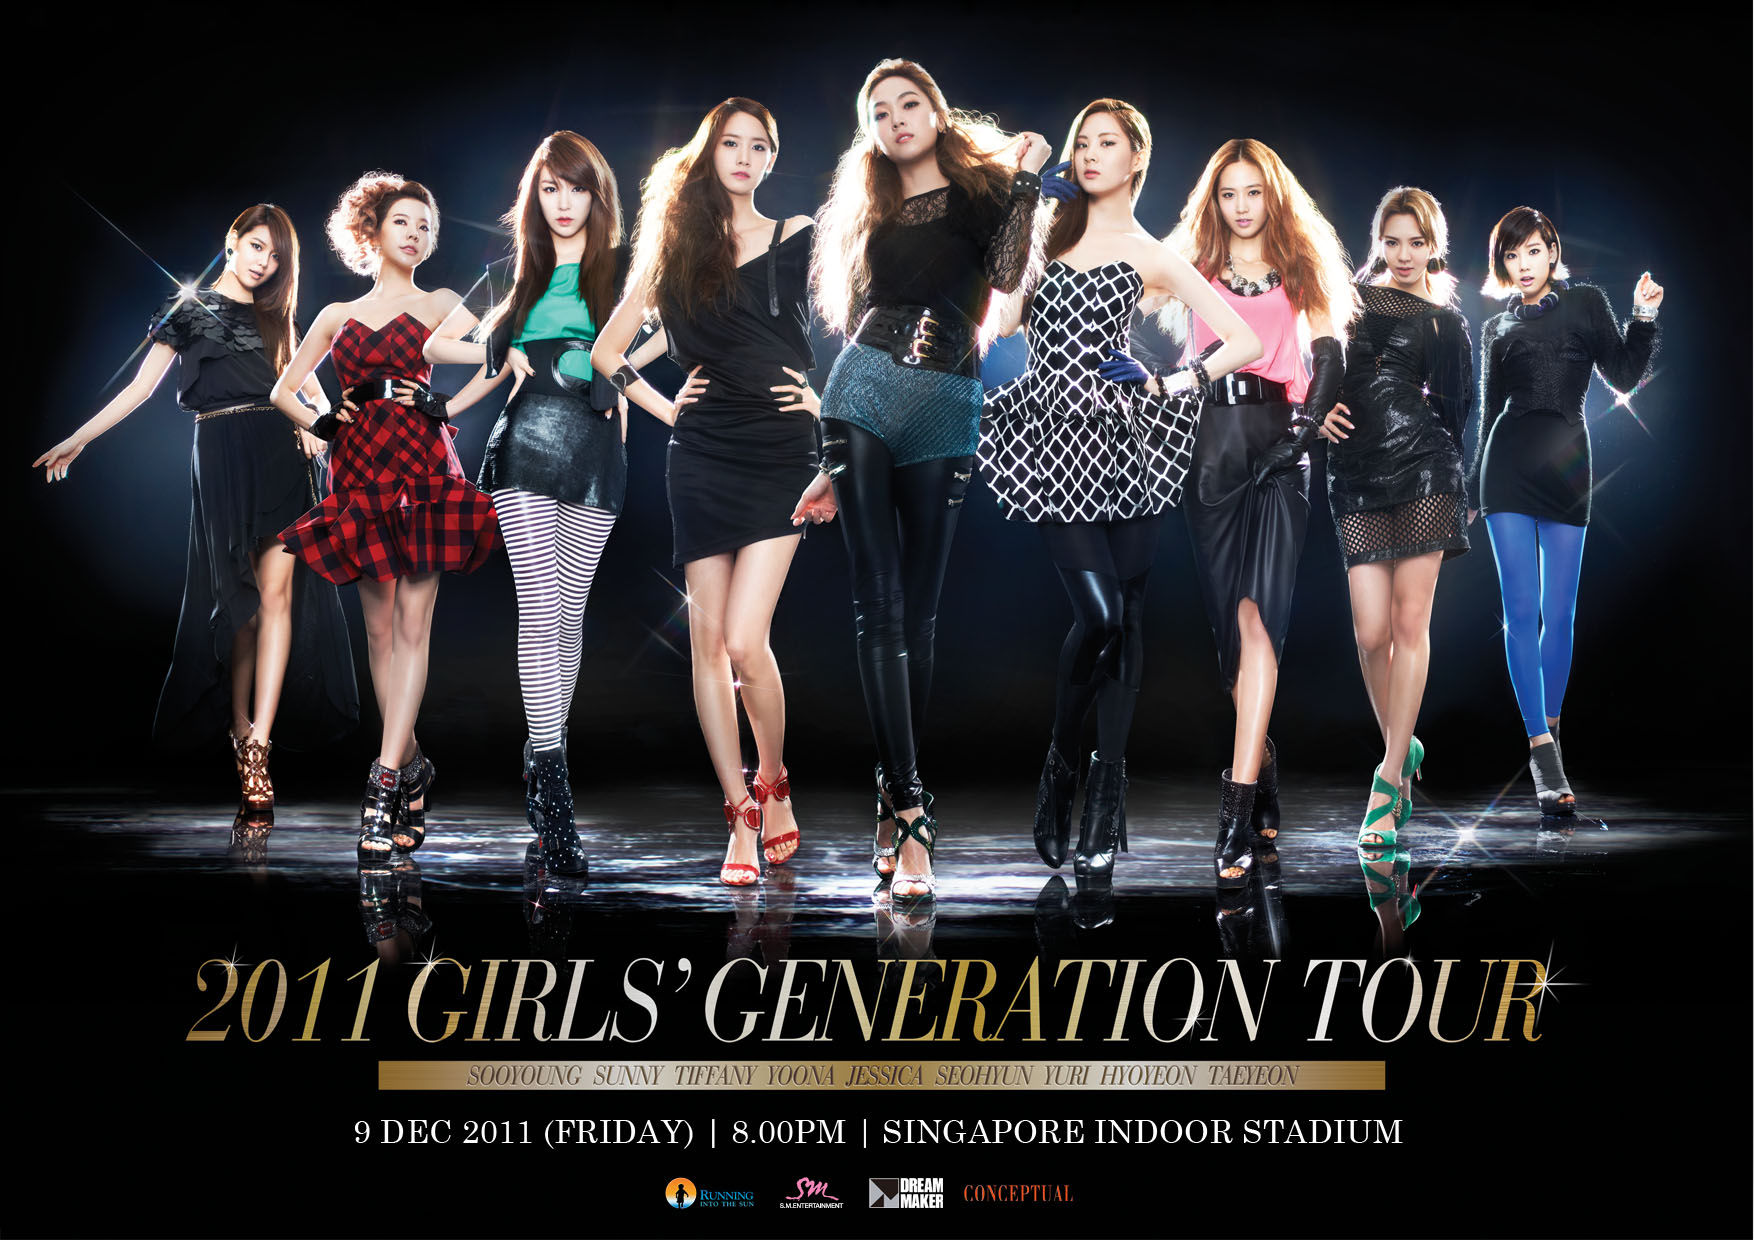 Girls Generation Concert In Singapore Date Out 9 10 Dec